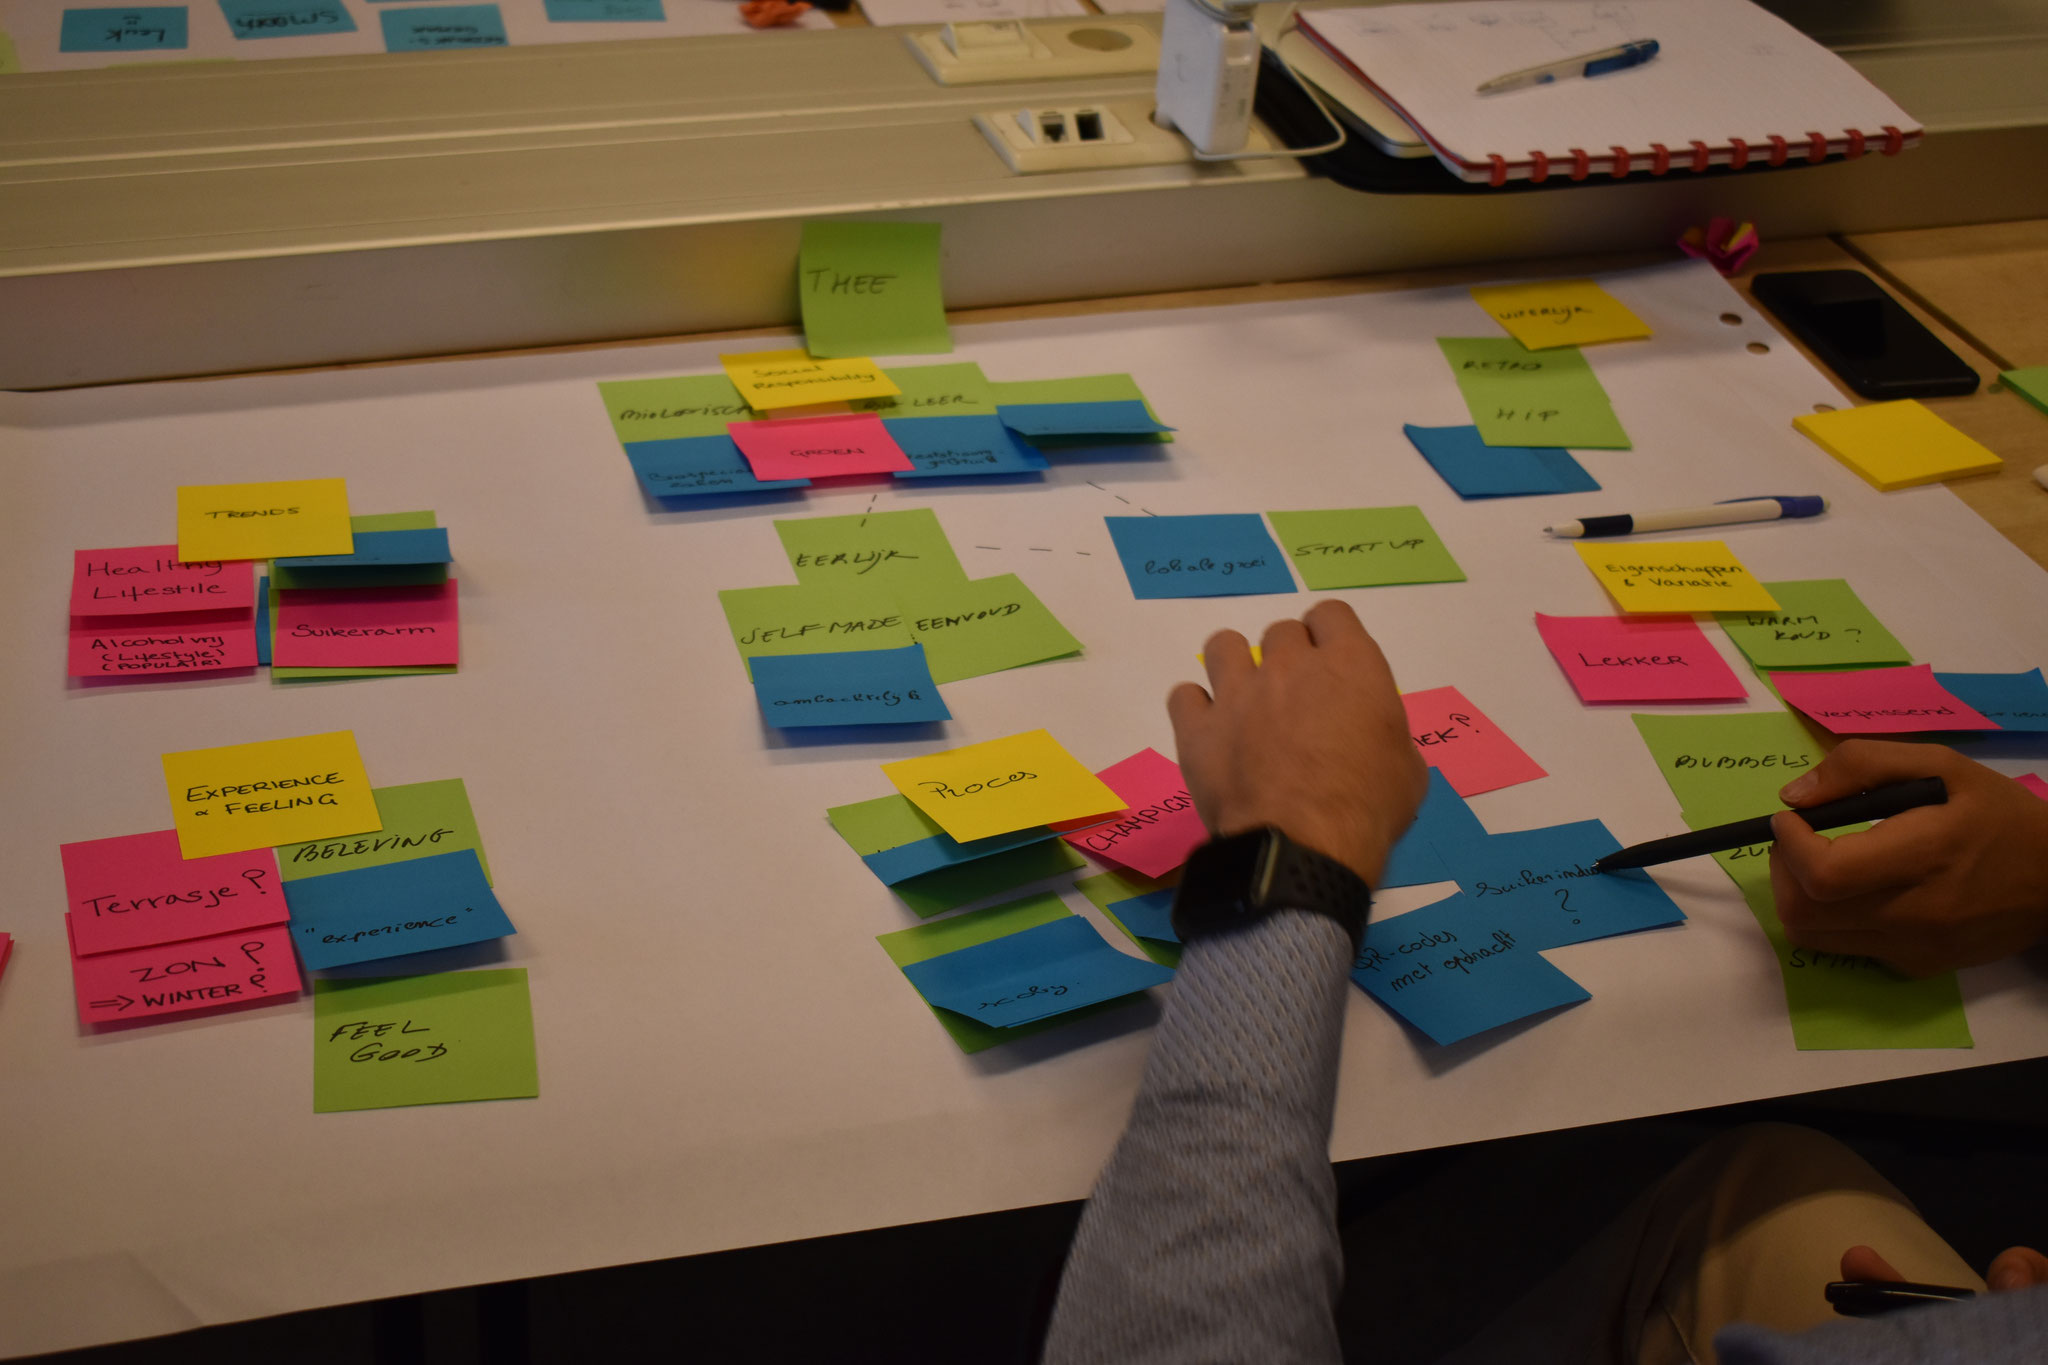 Workshop Prototyping in IDC Howest